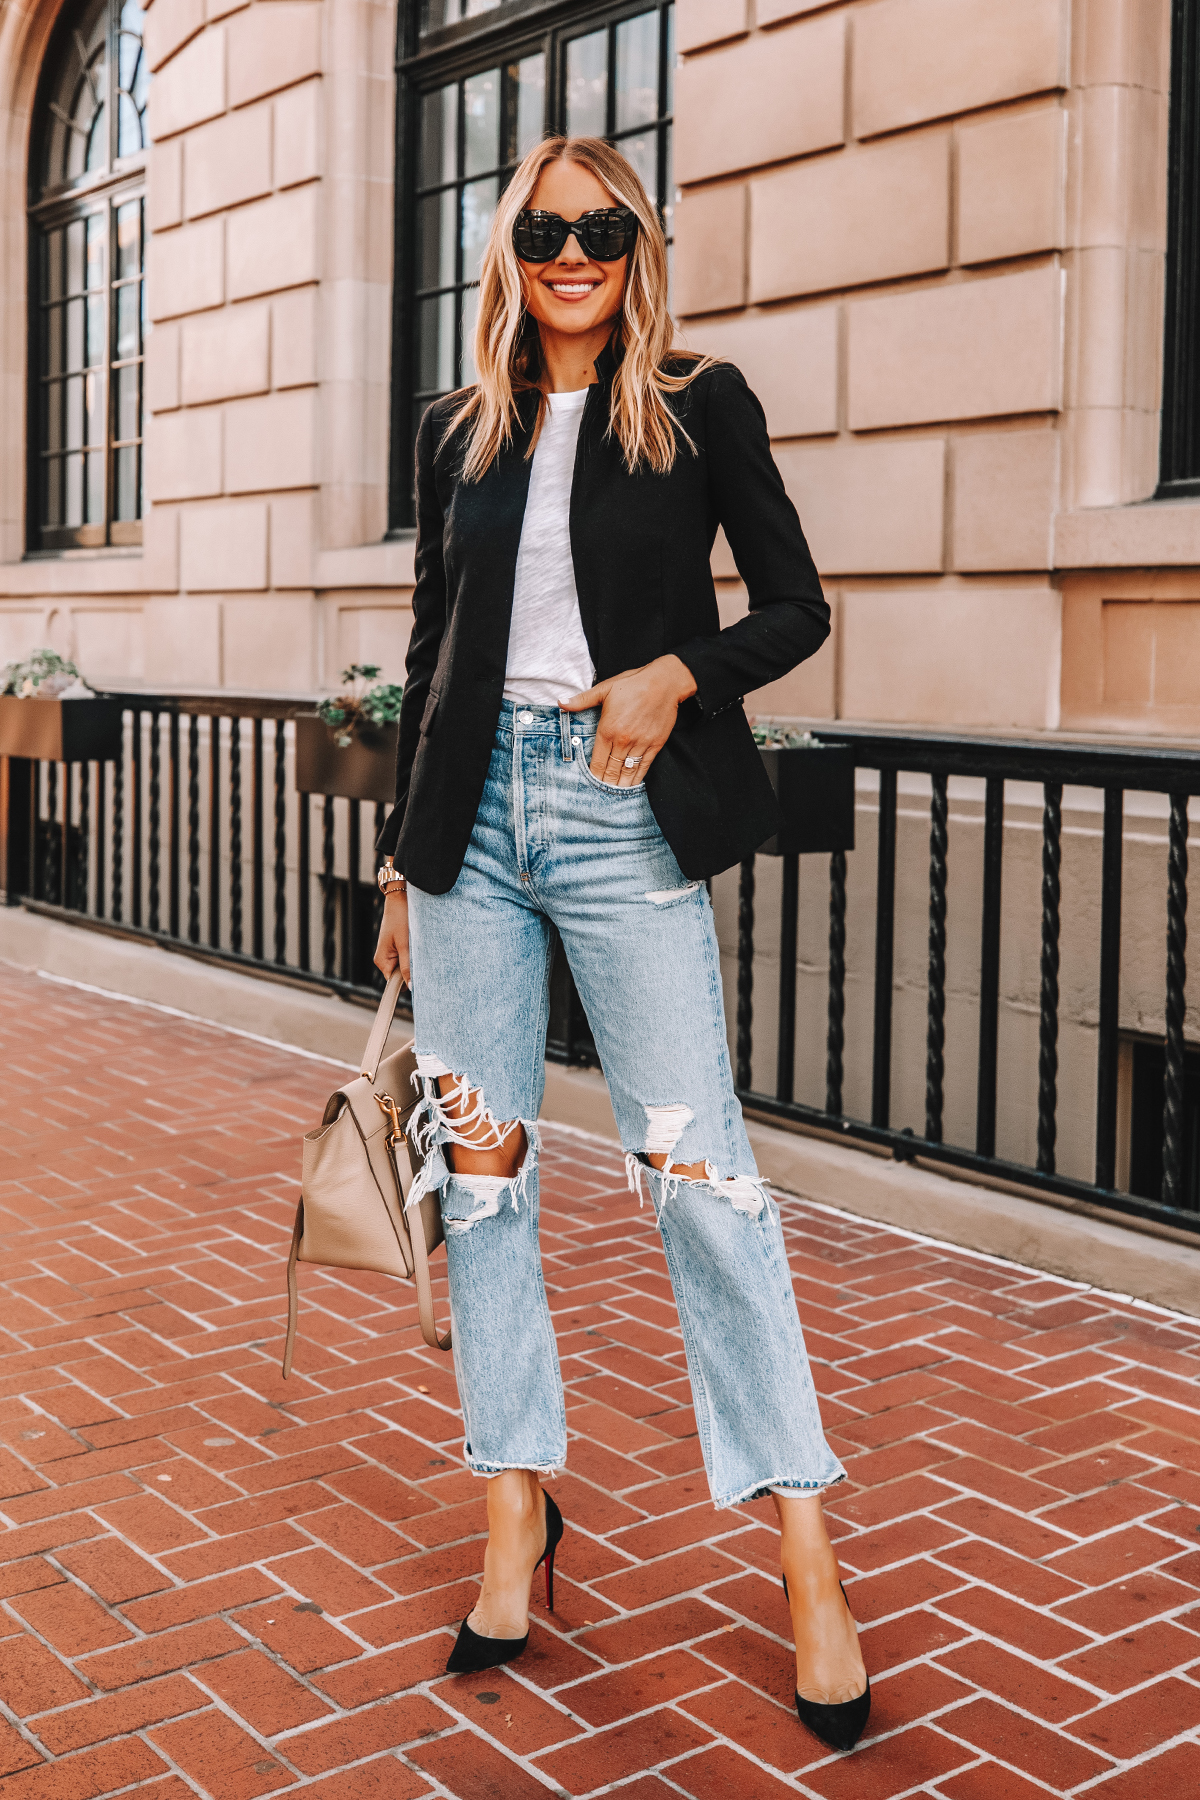 madewell black leather moto jacket outfit best soft leather jacket silver zippers